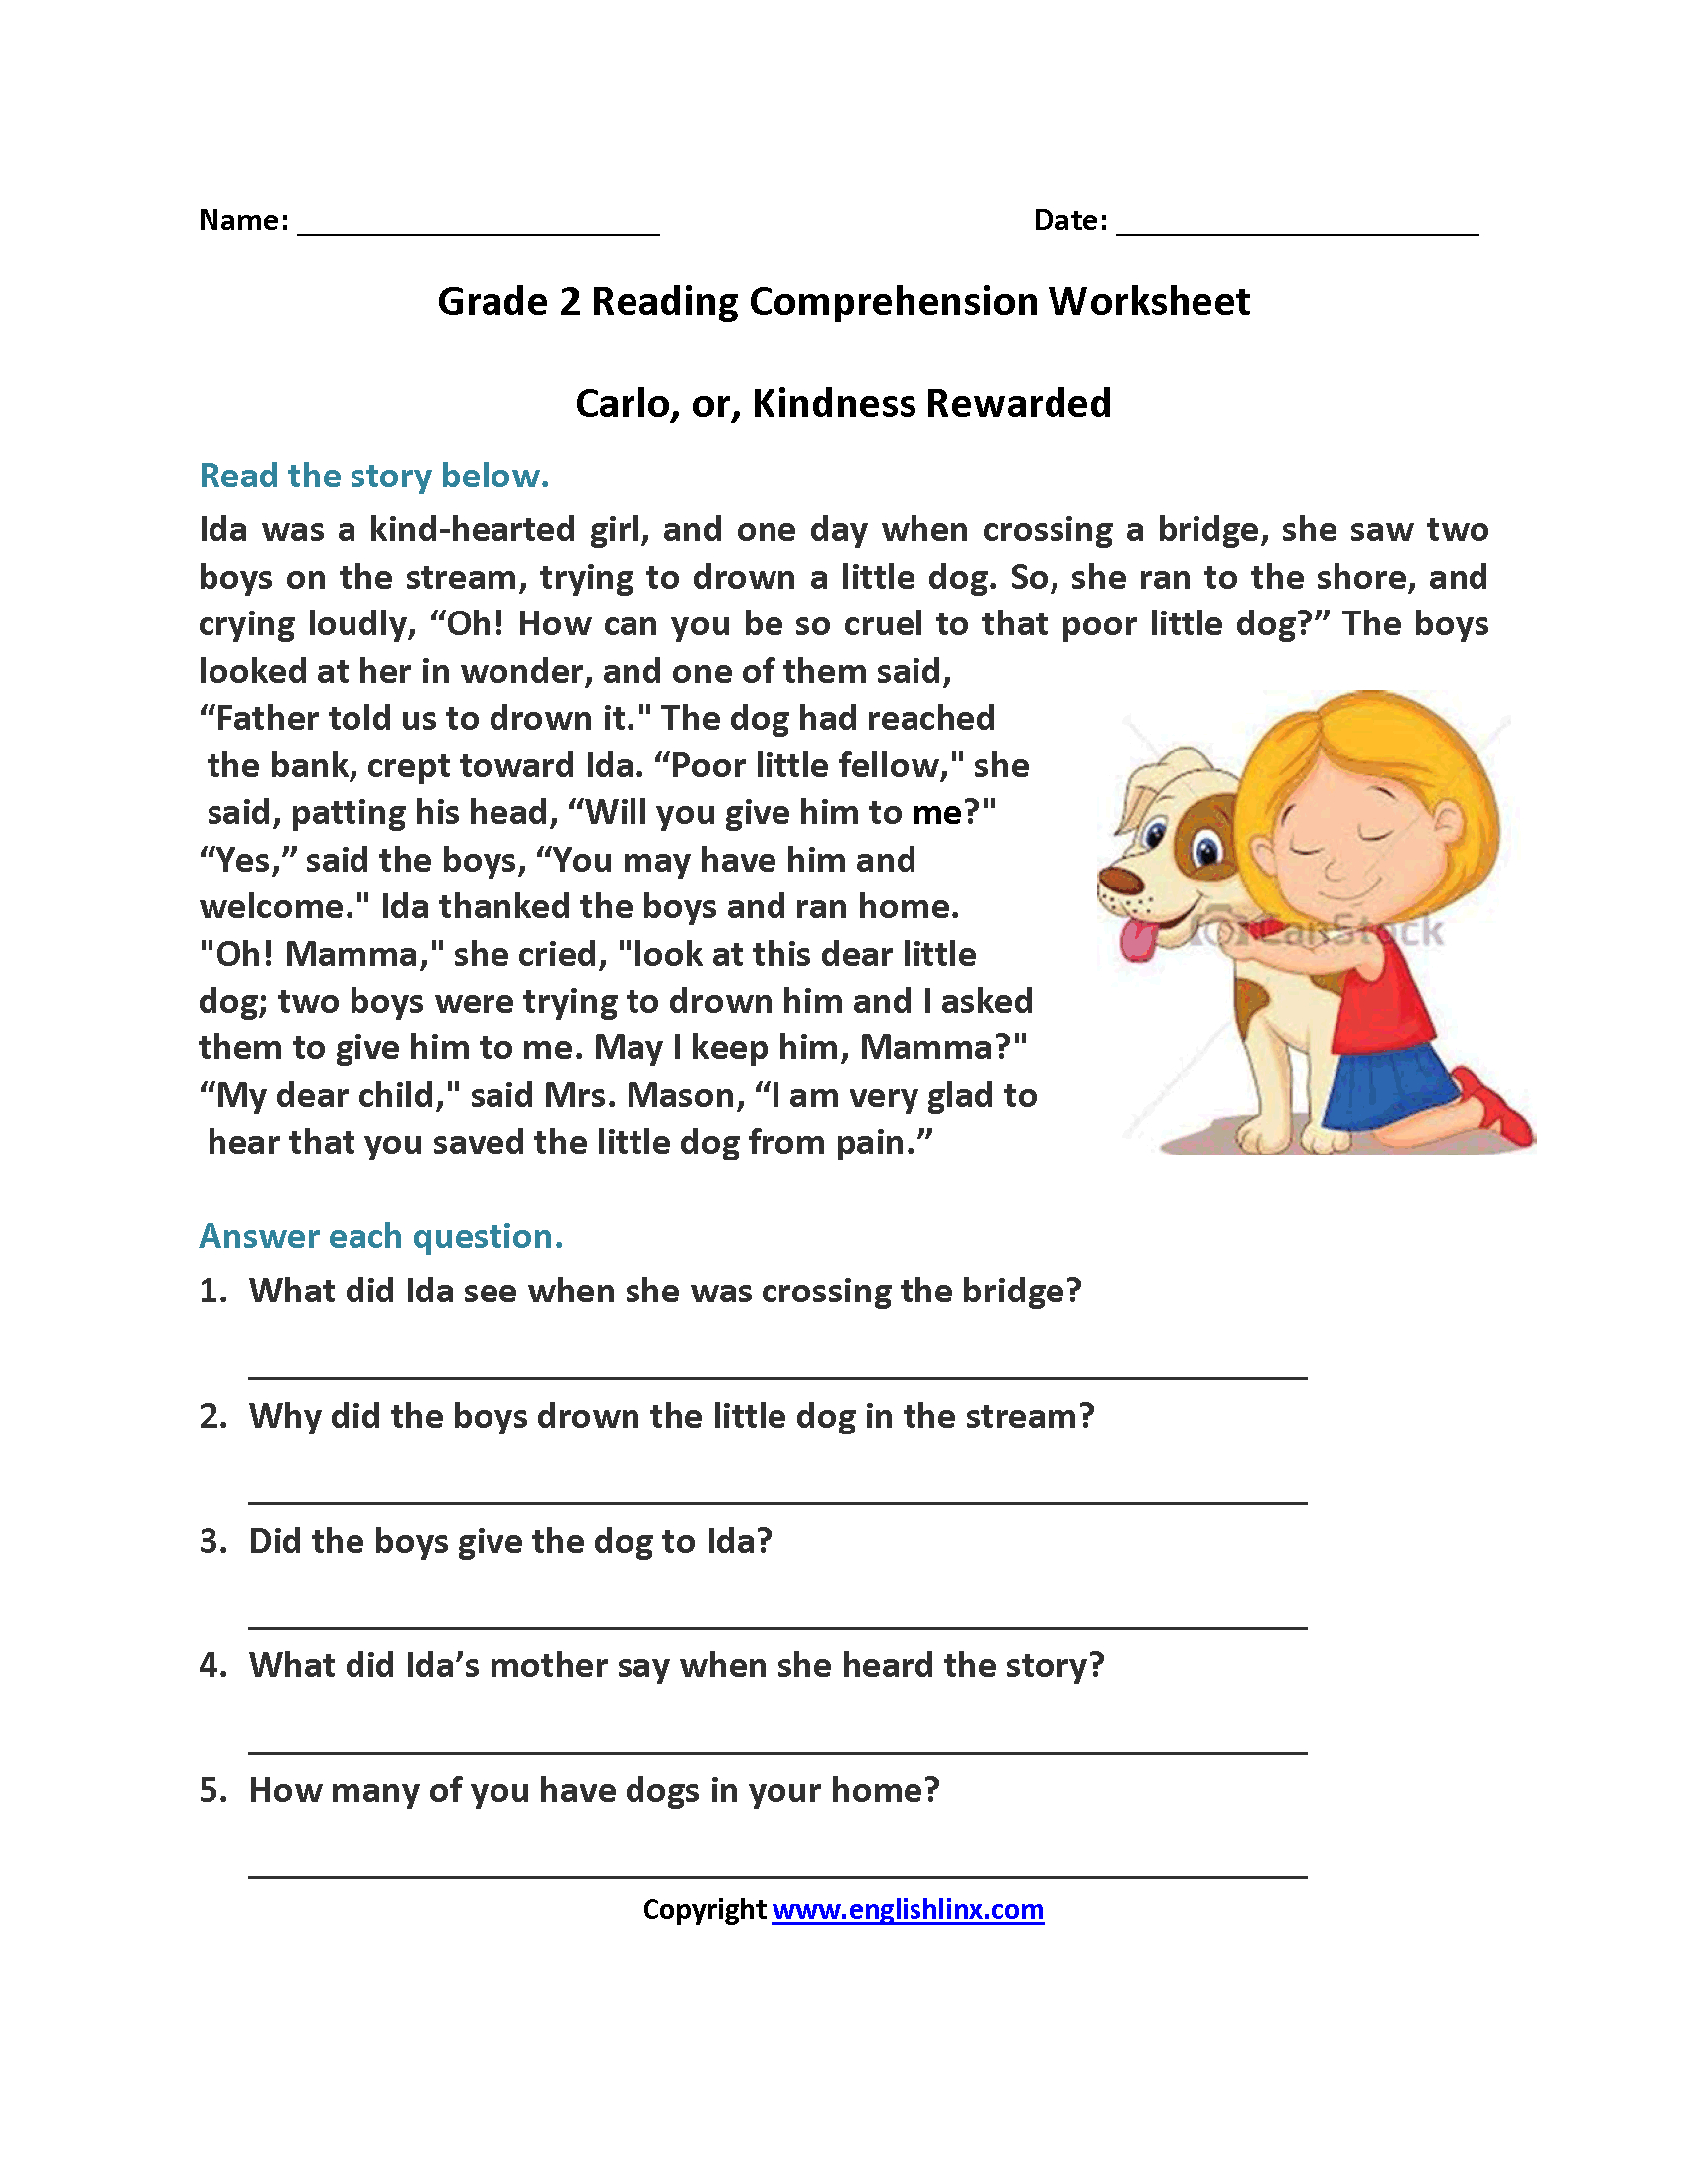 Carlo Or Kindness Rewarded Second Grade Reading Worksheets | Reading - Free Printable Comprehension Worksheets For Grade 5